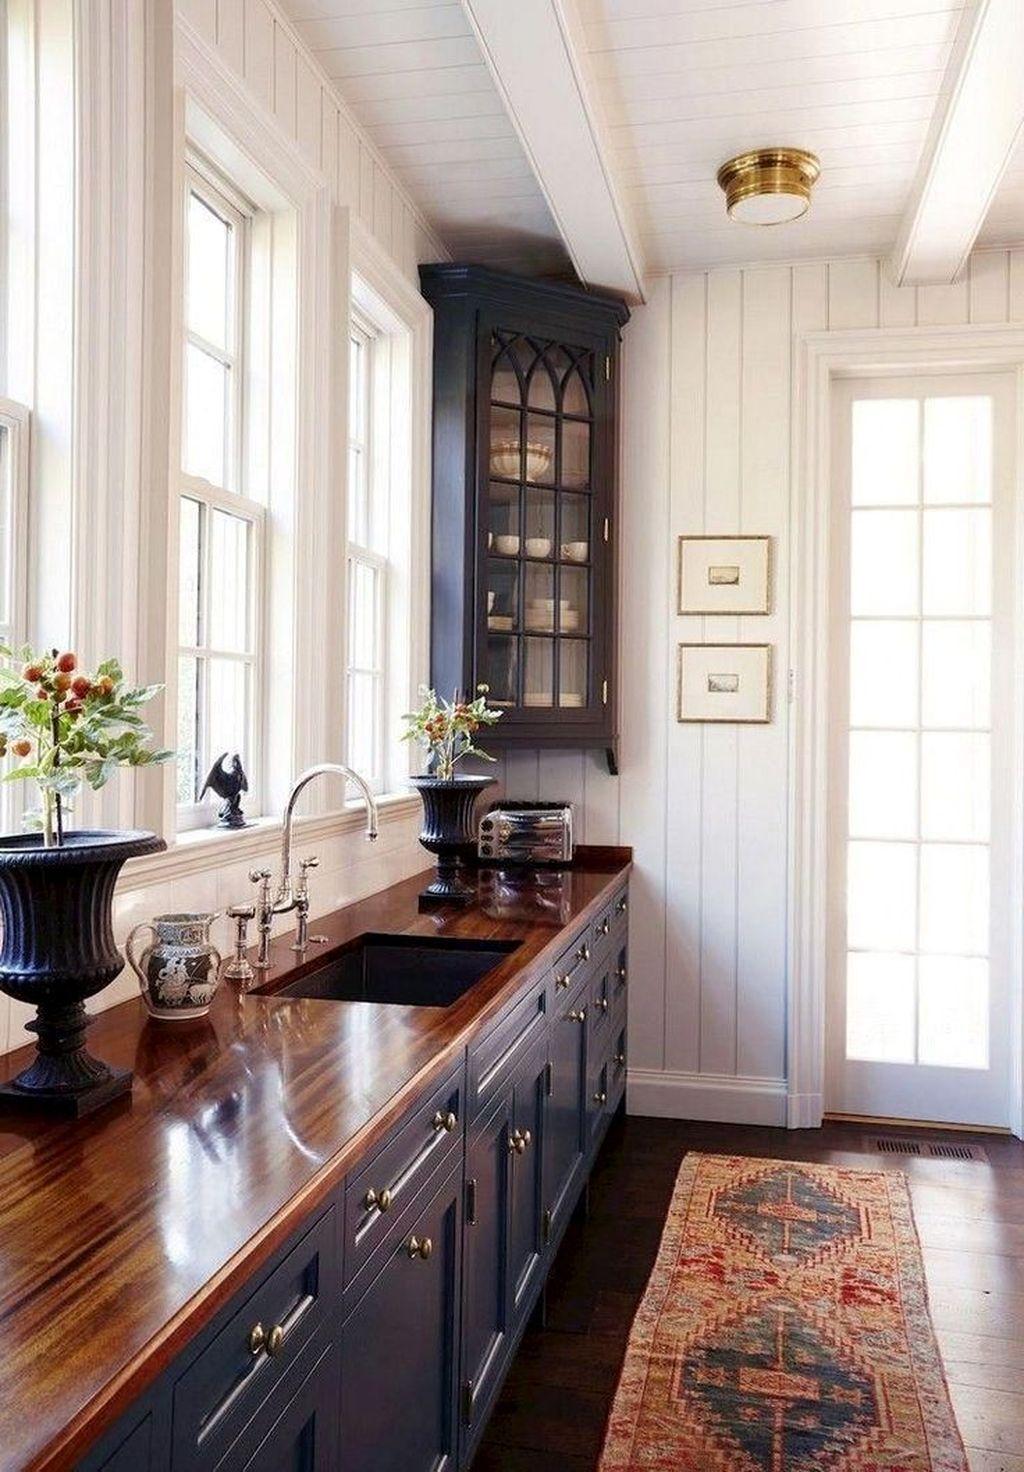 Inspiring Country Kitchen Decor Ideas You Should Copy 32